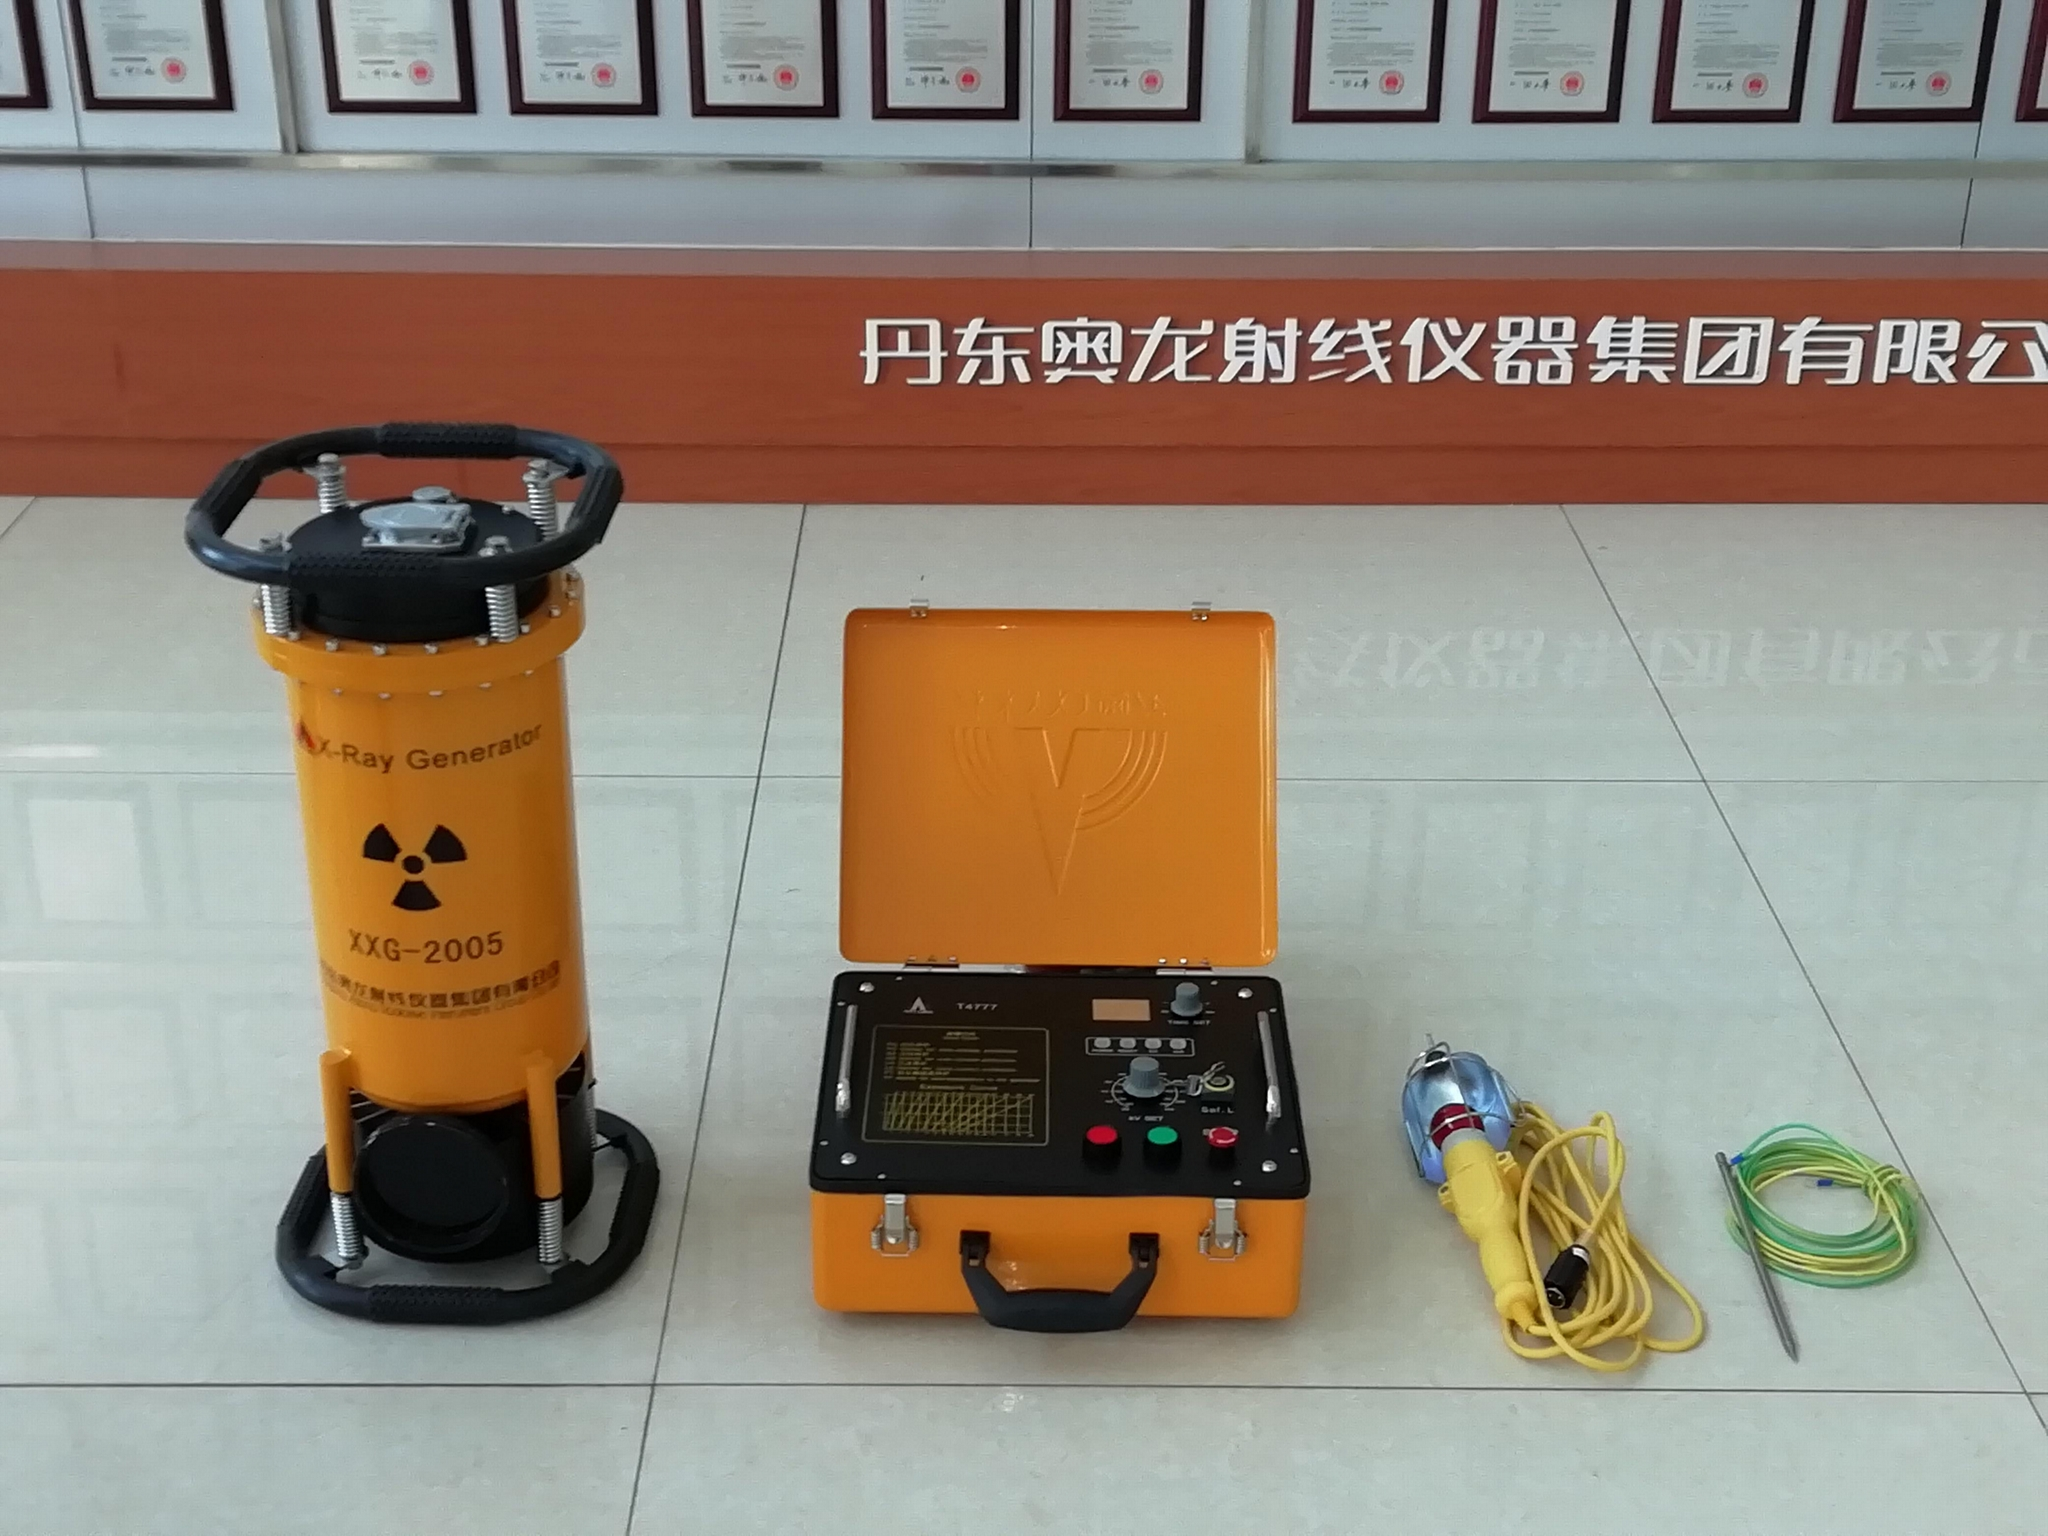 Frequency conversion portable x-ray flaw detector 4